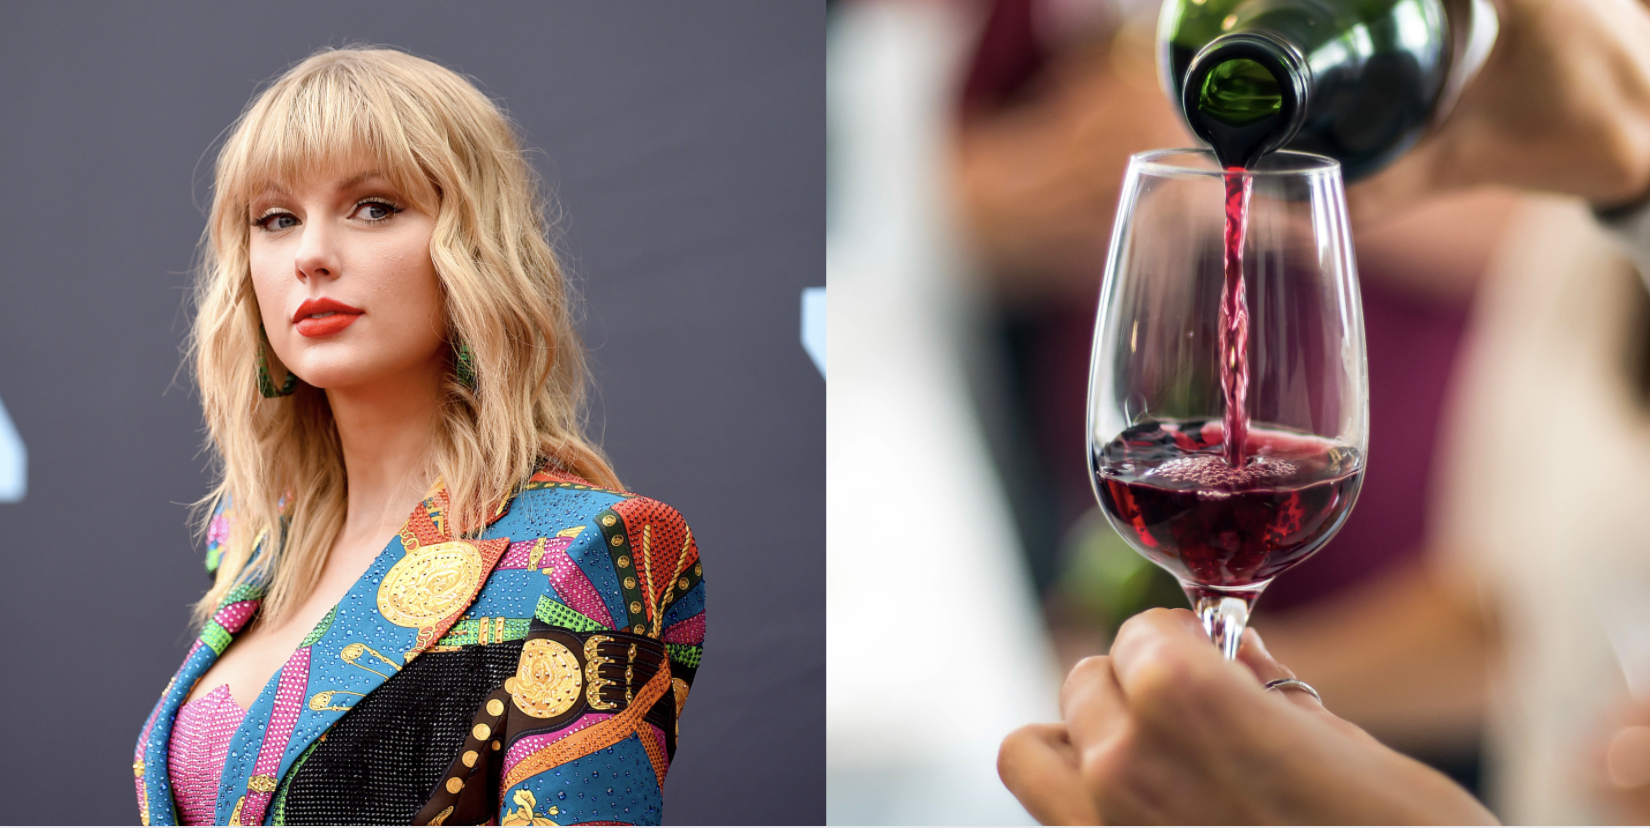 Taylor Swift Suggests Drinking Red Wine While Listening To Folklore